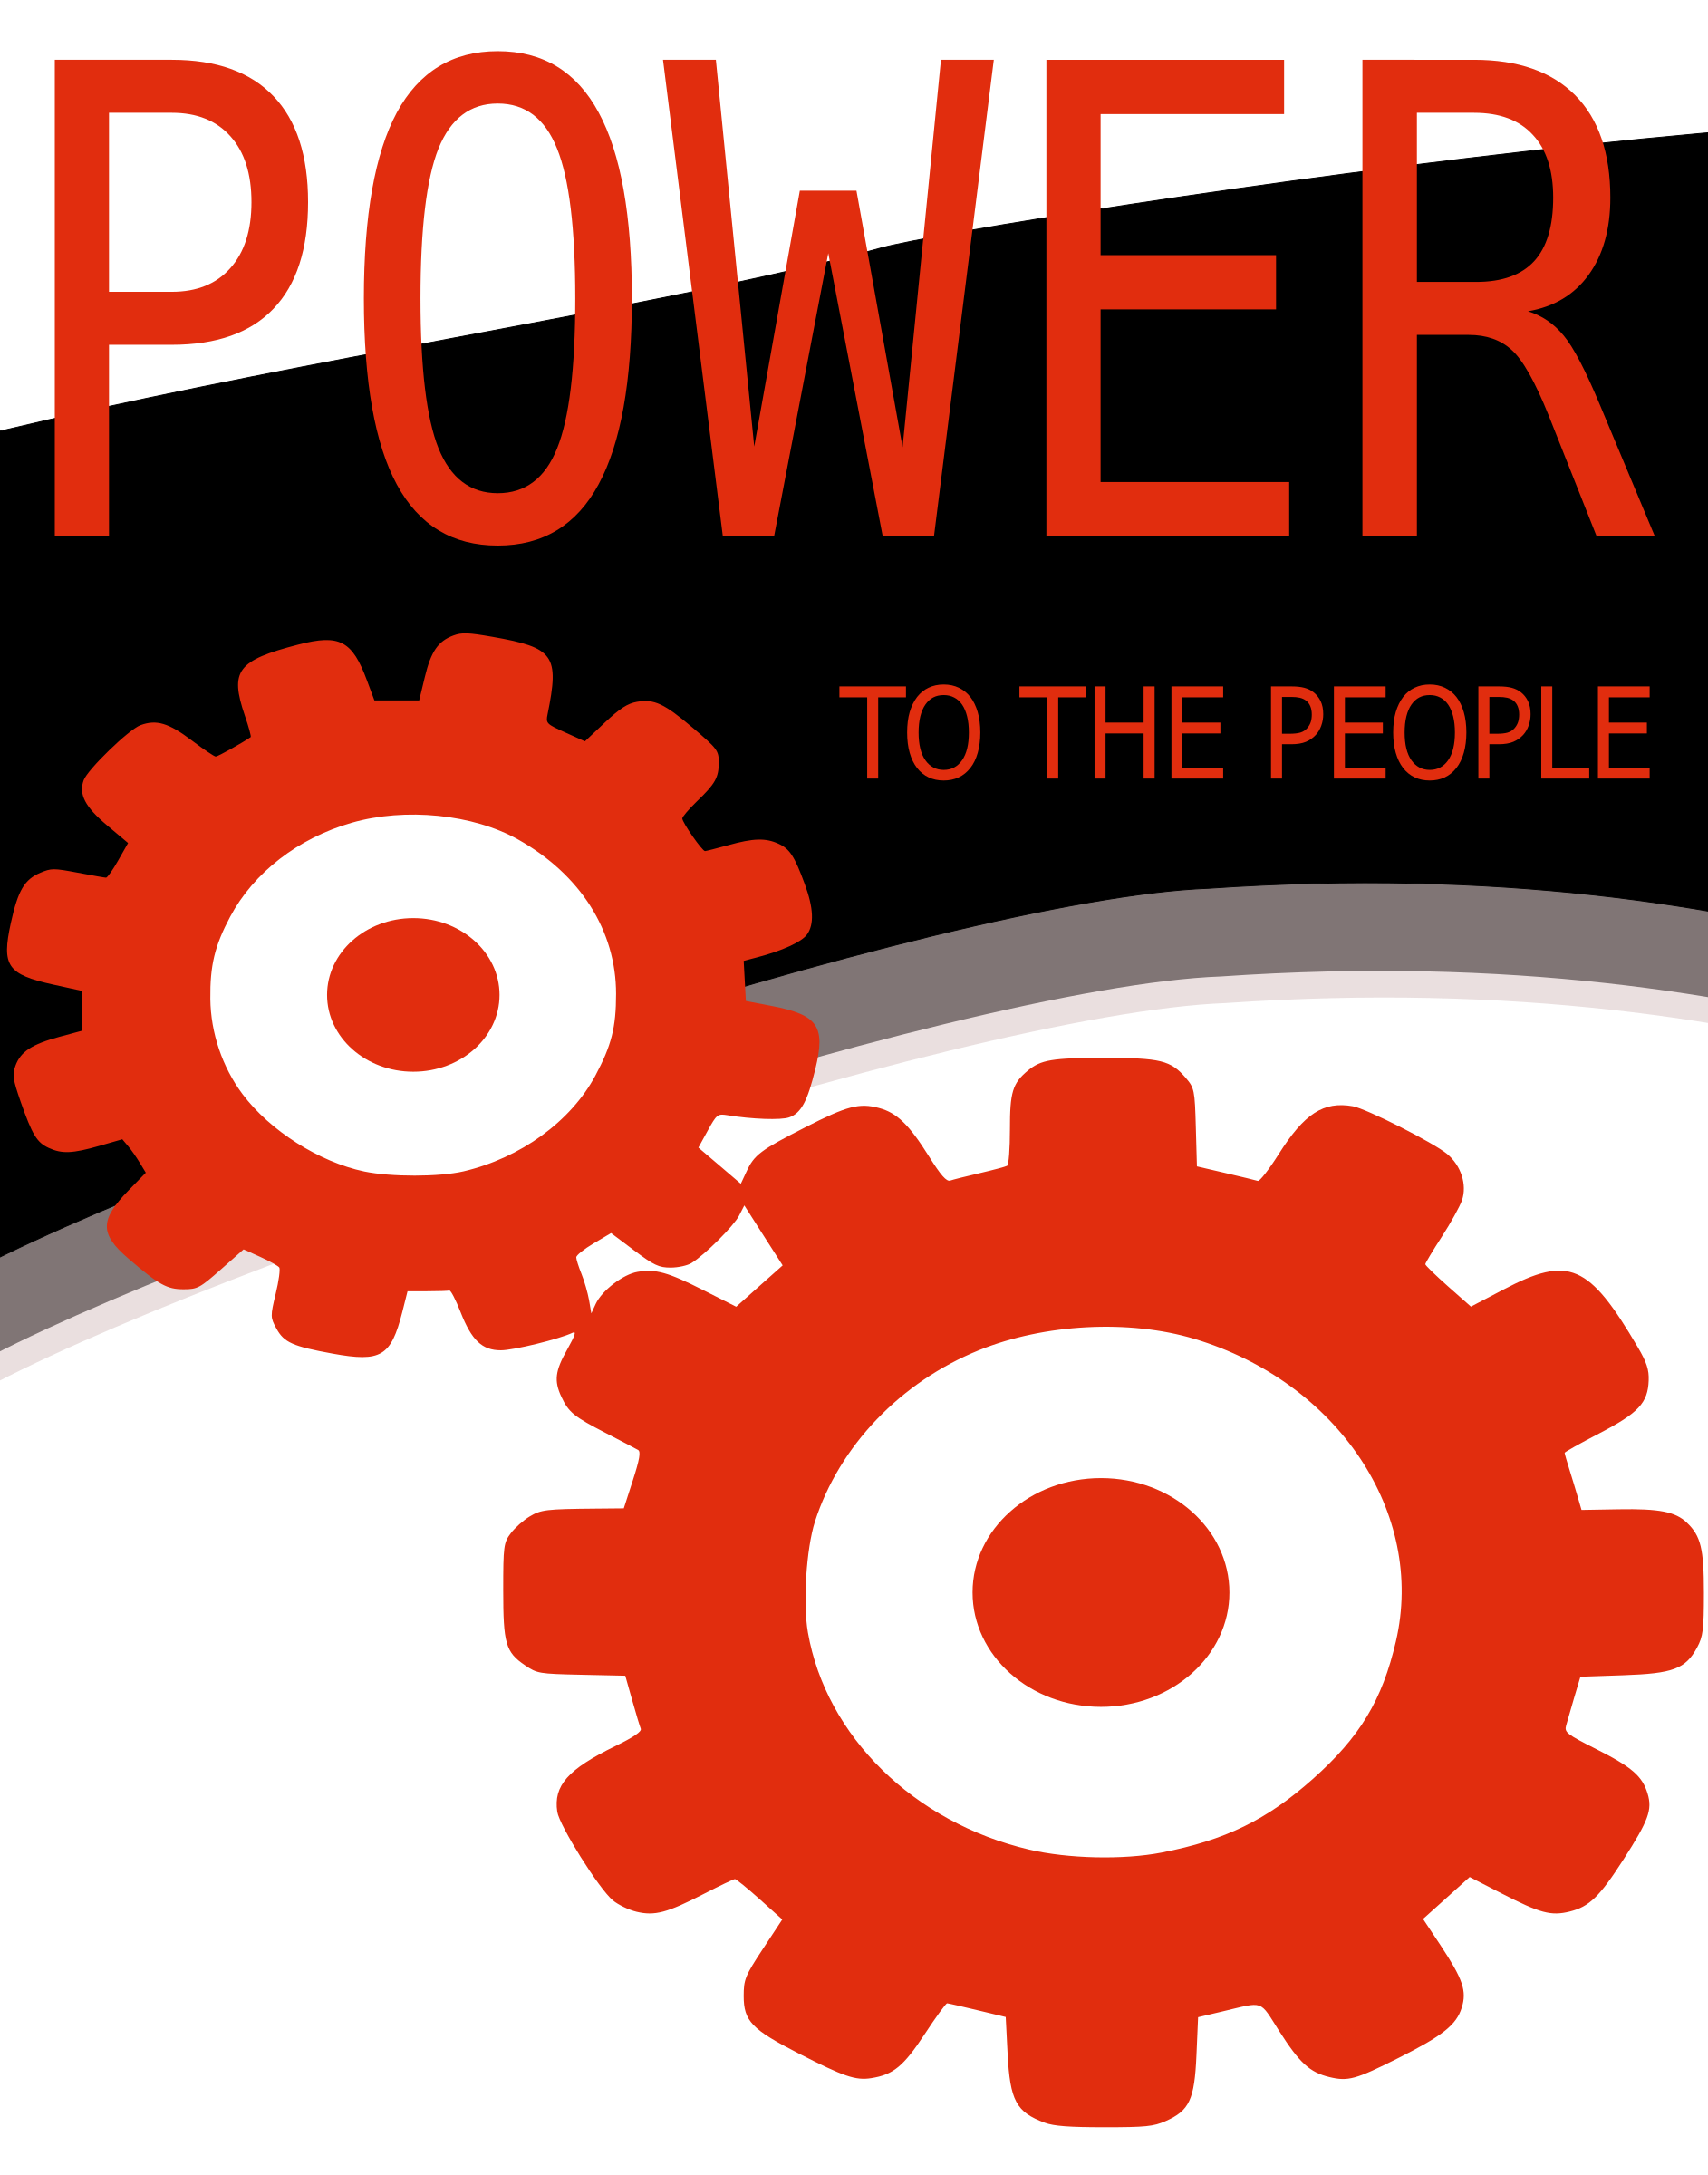 Power to the People - Remix by j4p4n